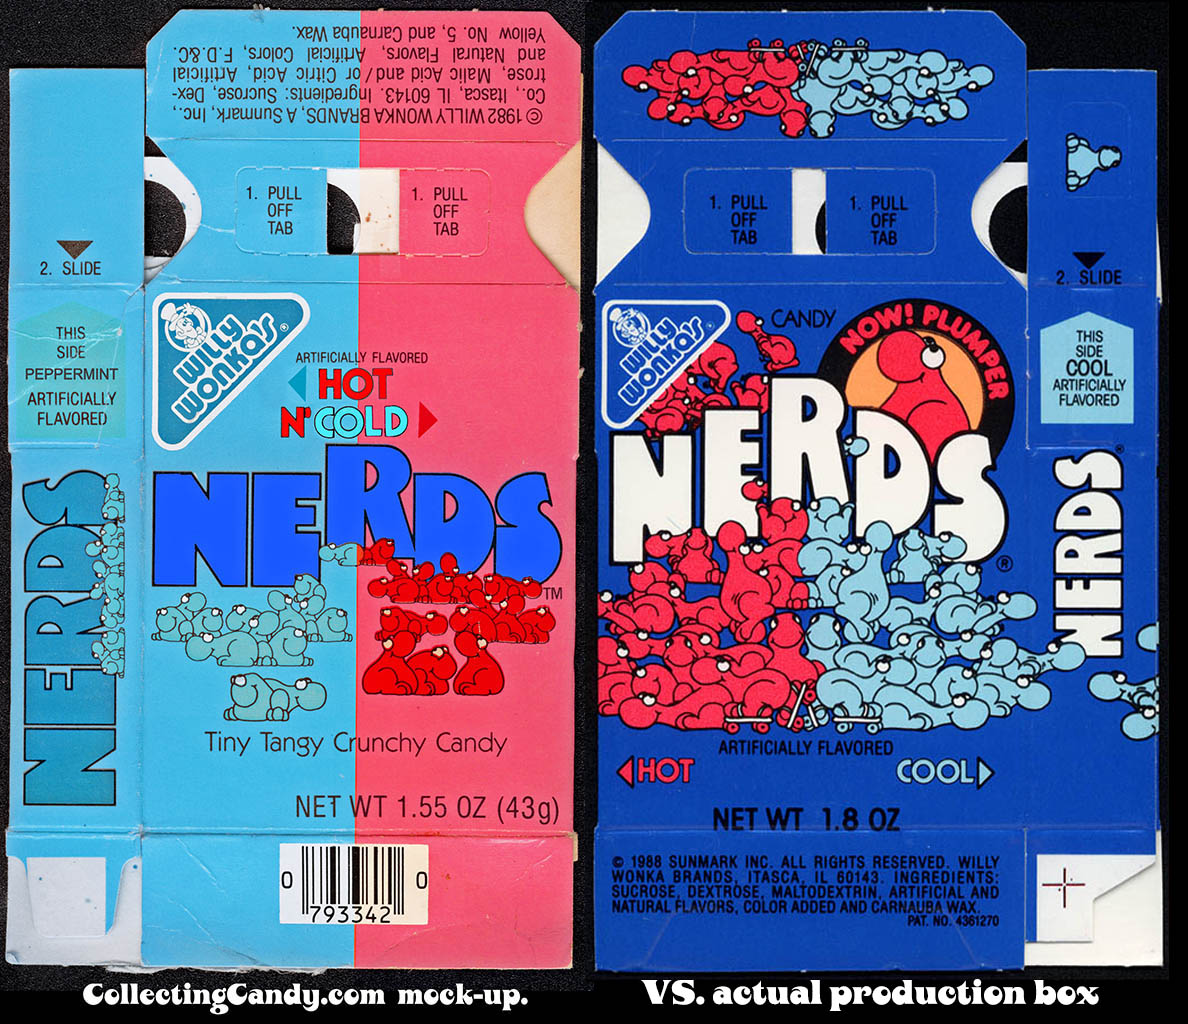 Nerds Hot and Cold - CollectingCandy mock-up vs production box